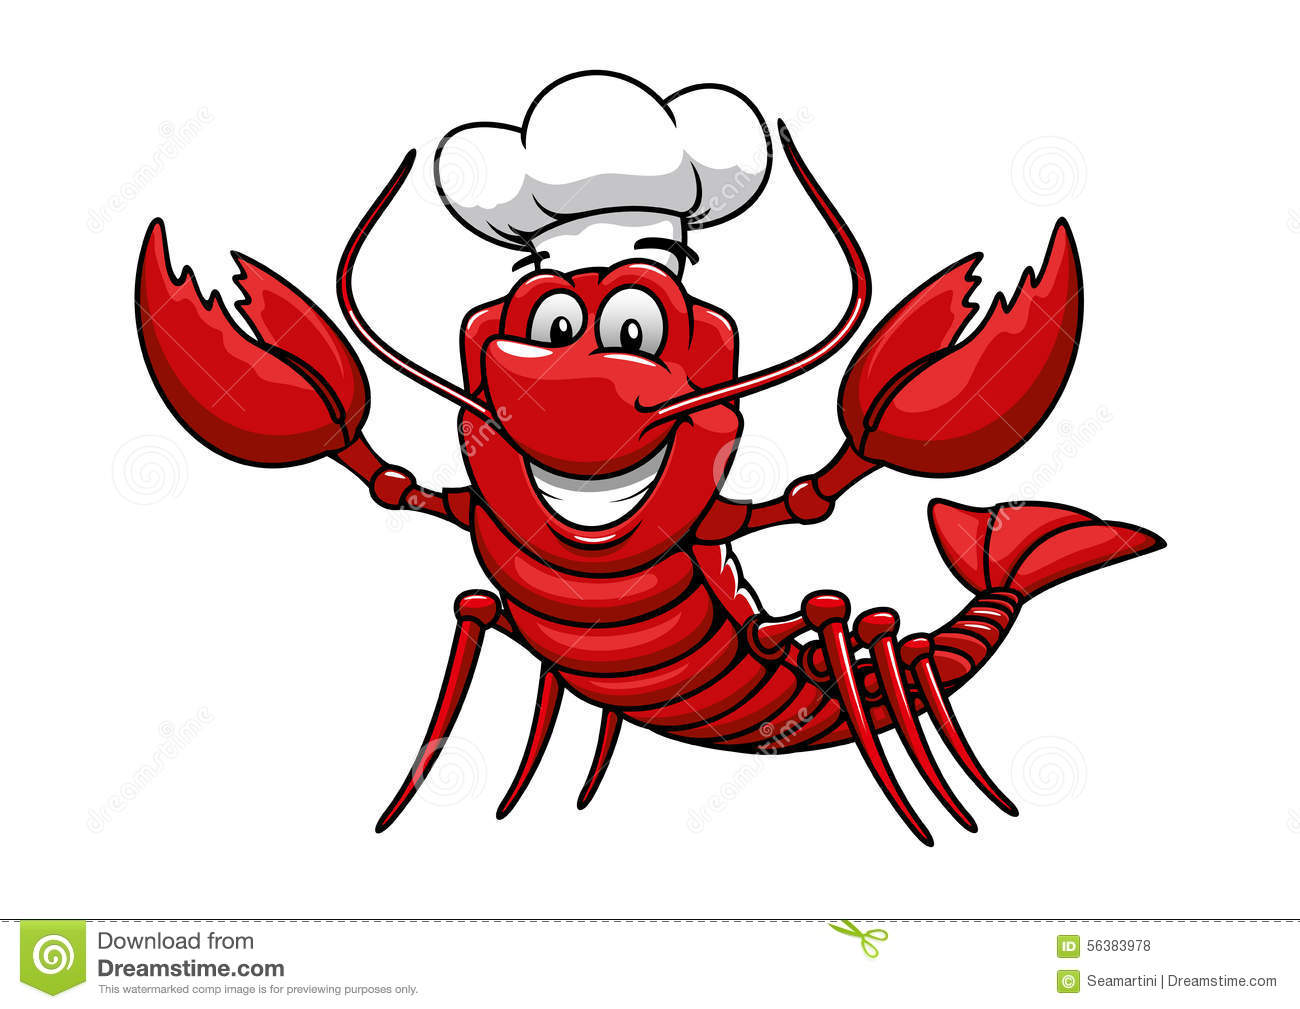 Cartoon Red Lobster Chef In Toque Cap Stock Vector - Illustration of design, crawfish: 56383978